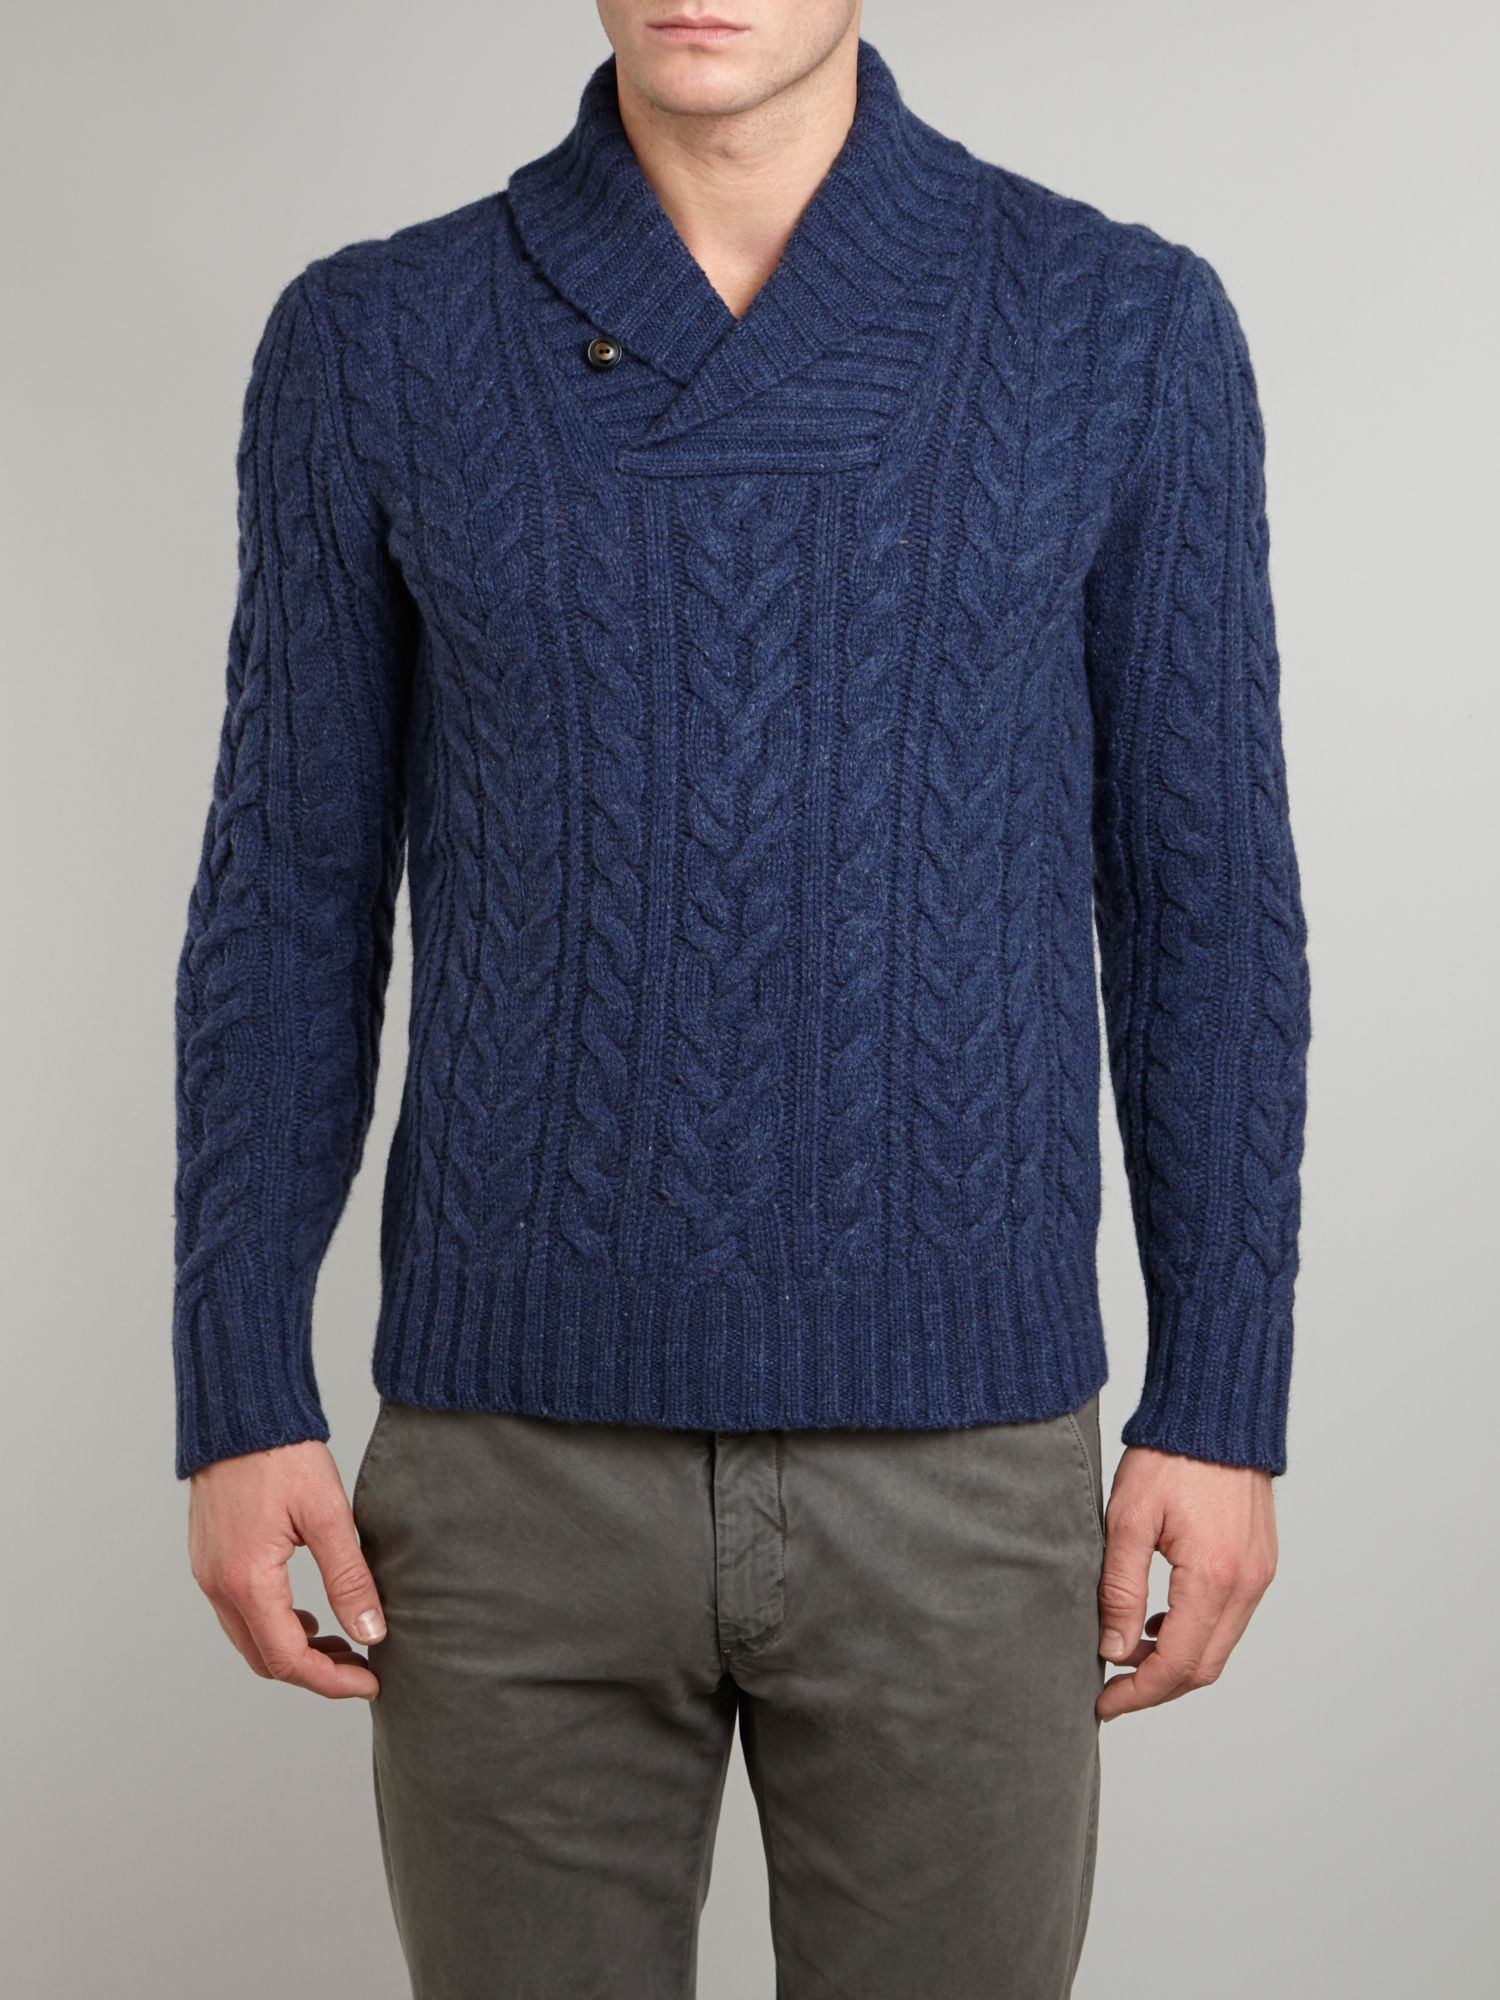 Aran cable knit shawl collar jumper